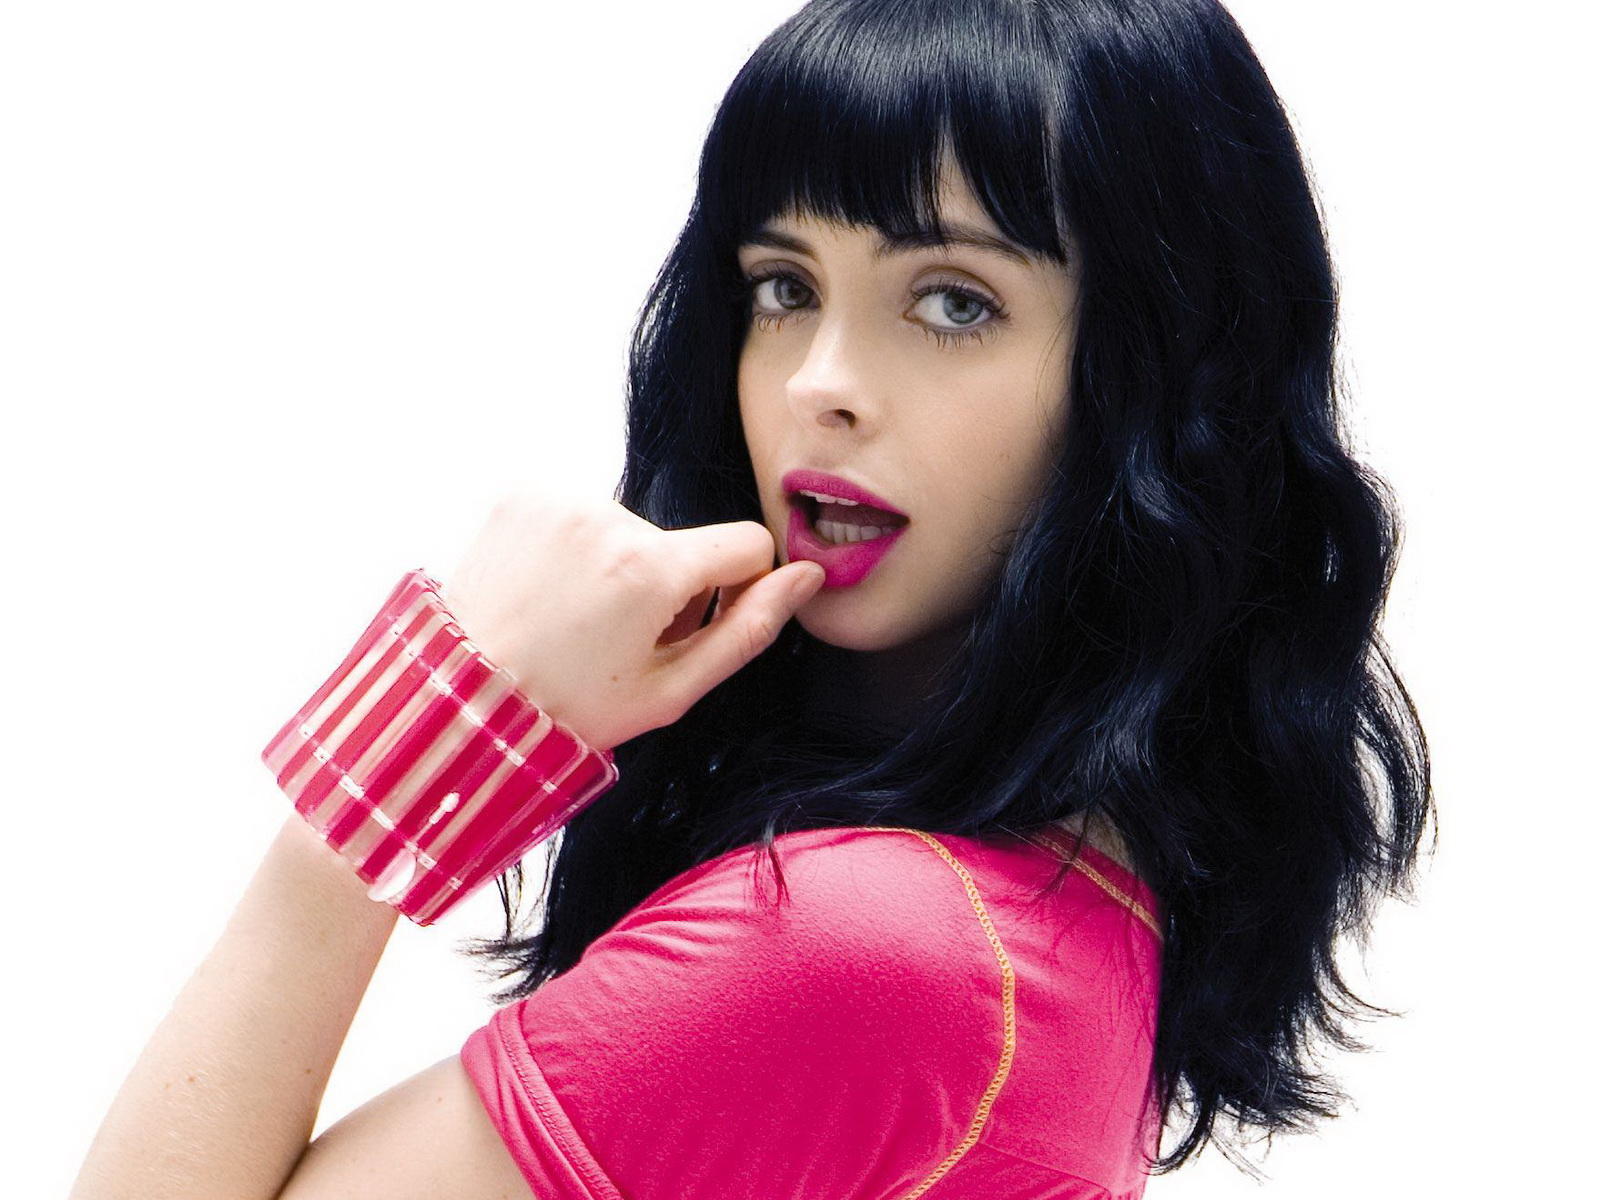 Don't look now, but the 'B' In Apartment 23 is moving out of the building and slipping on some superhero tights. Krysten Ritter, who played the infamous 'B ...